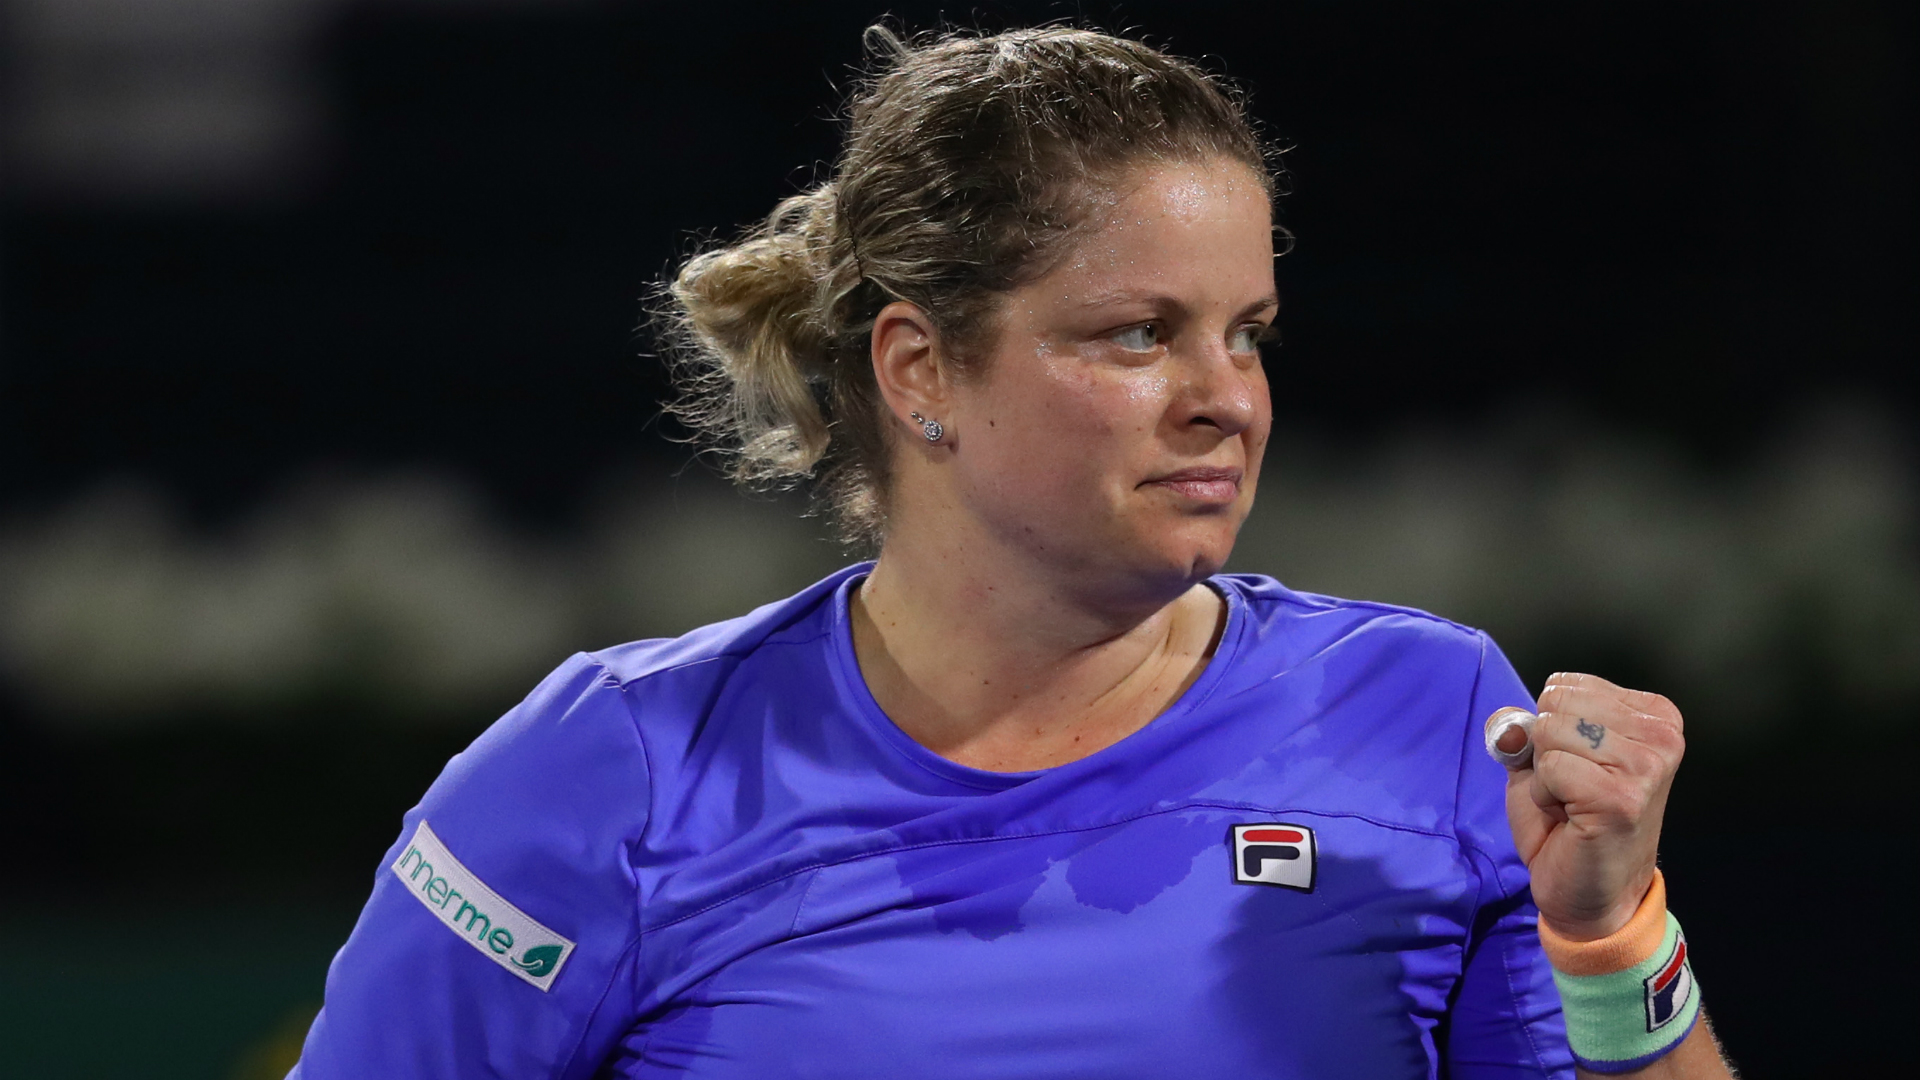 Kim Clijsters 'improving' ahead of second match in comeback